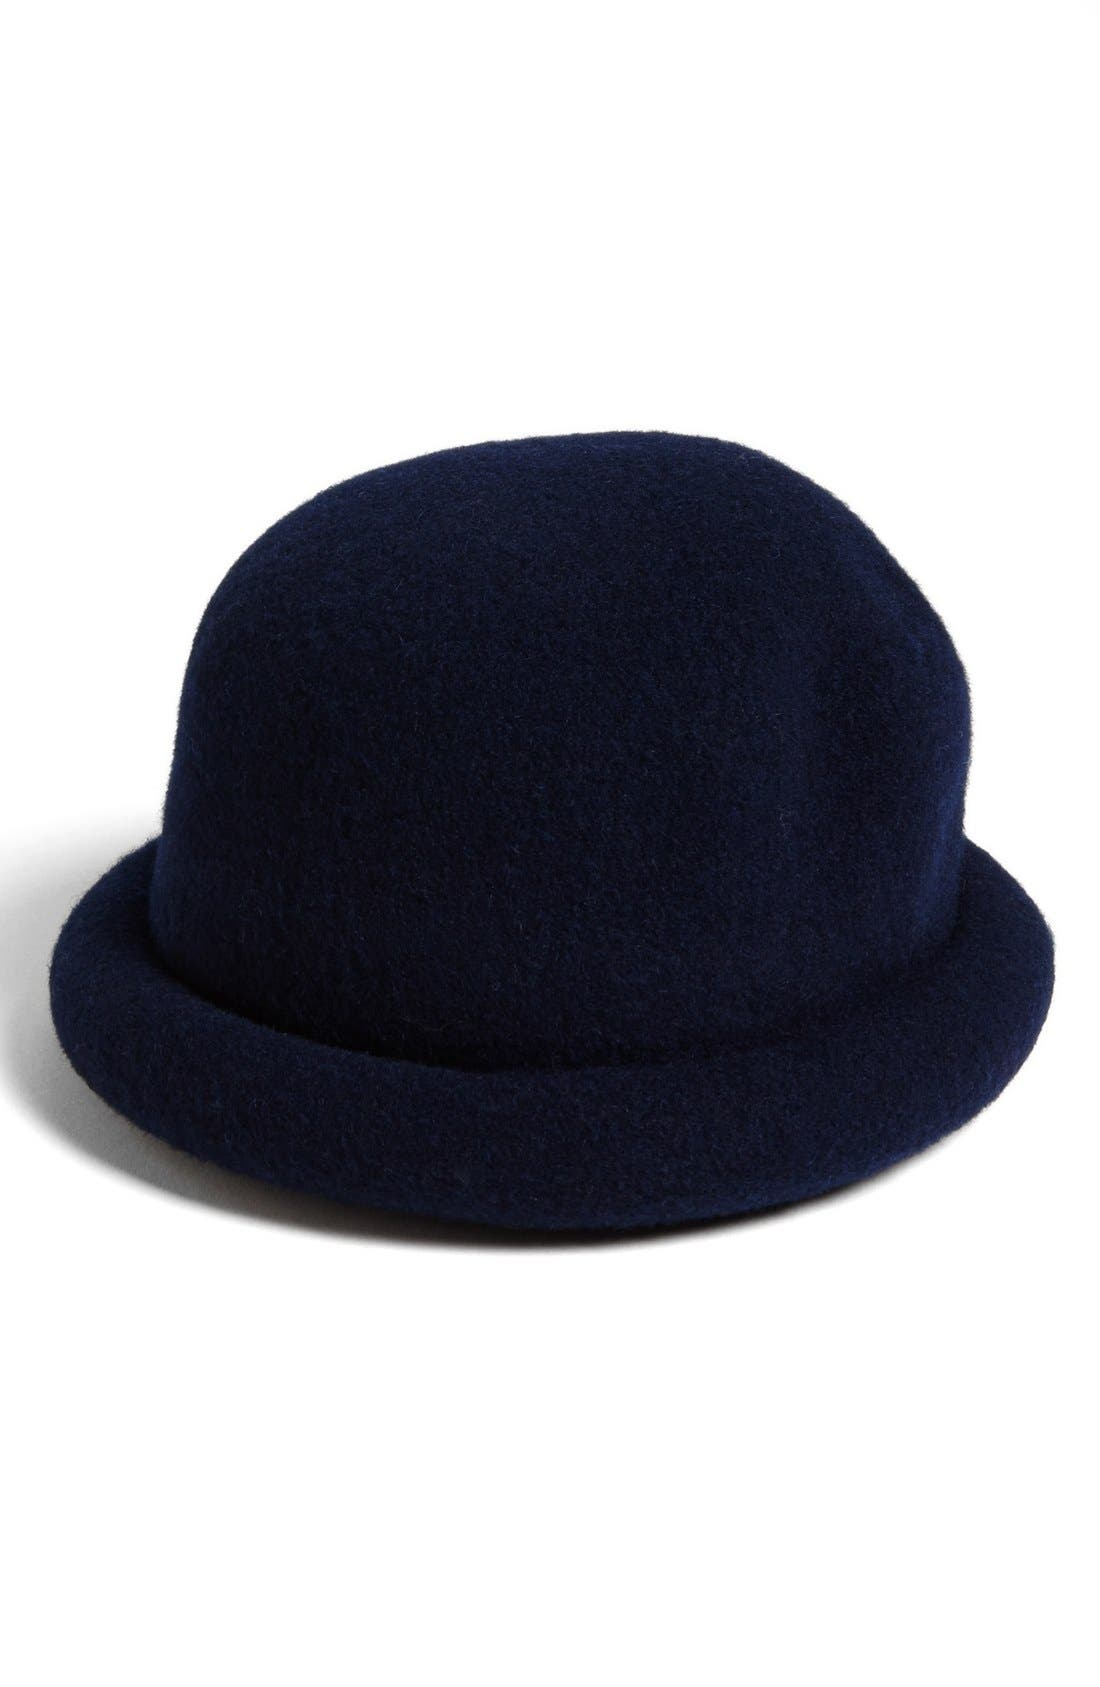 Alternate Image 1 Selected - Nordstrom Bowler Hat